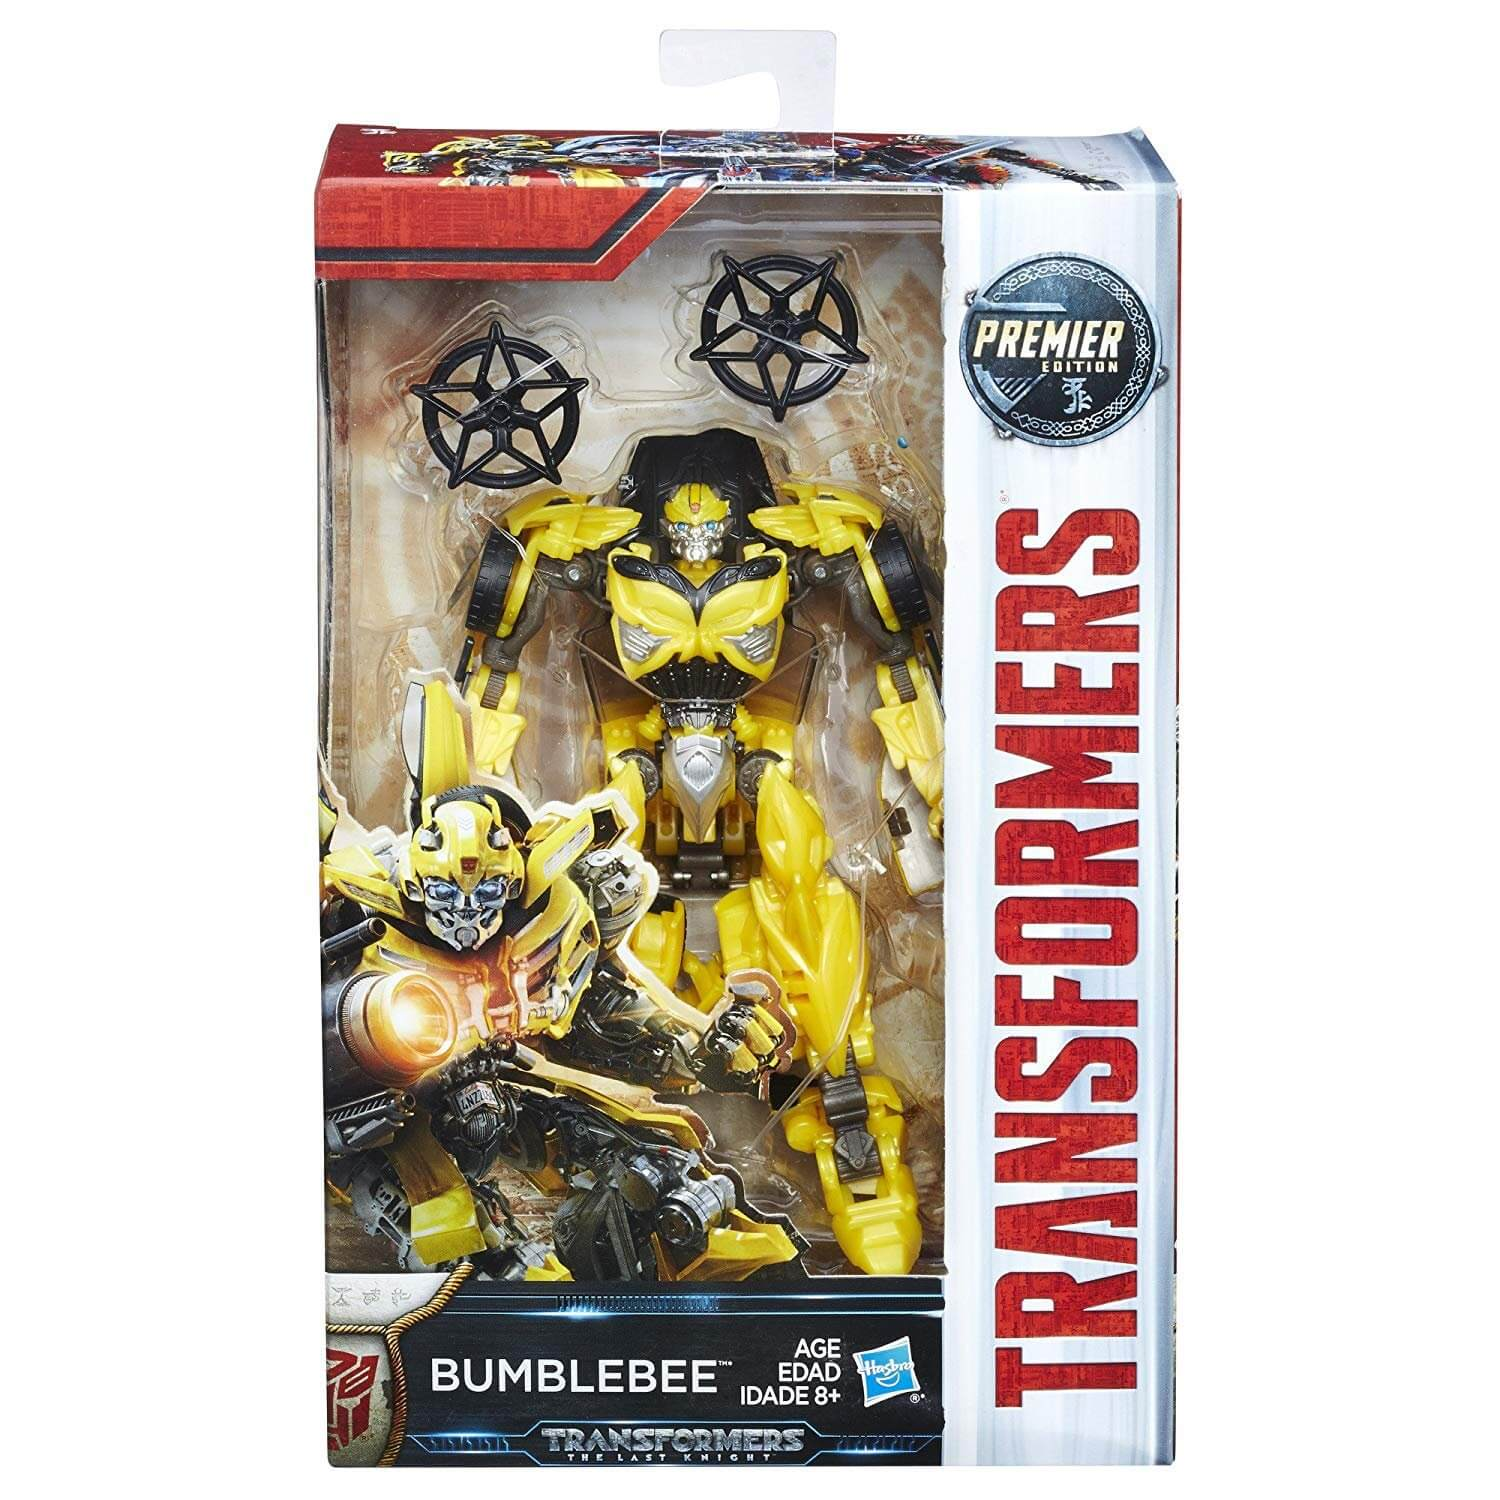 Bumblebee - Transformers: The Last Knight Premier Edition Deluxe - Hasbro